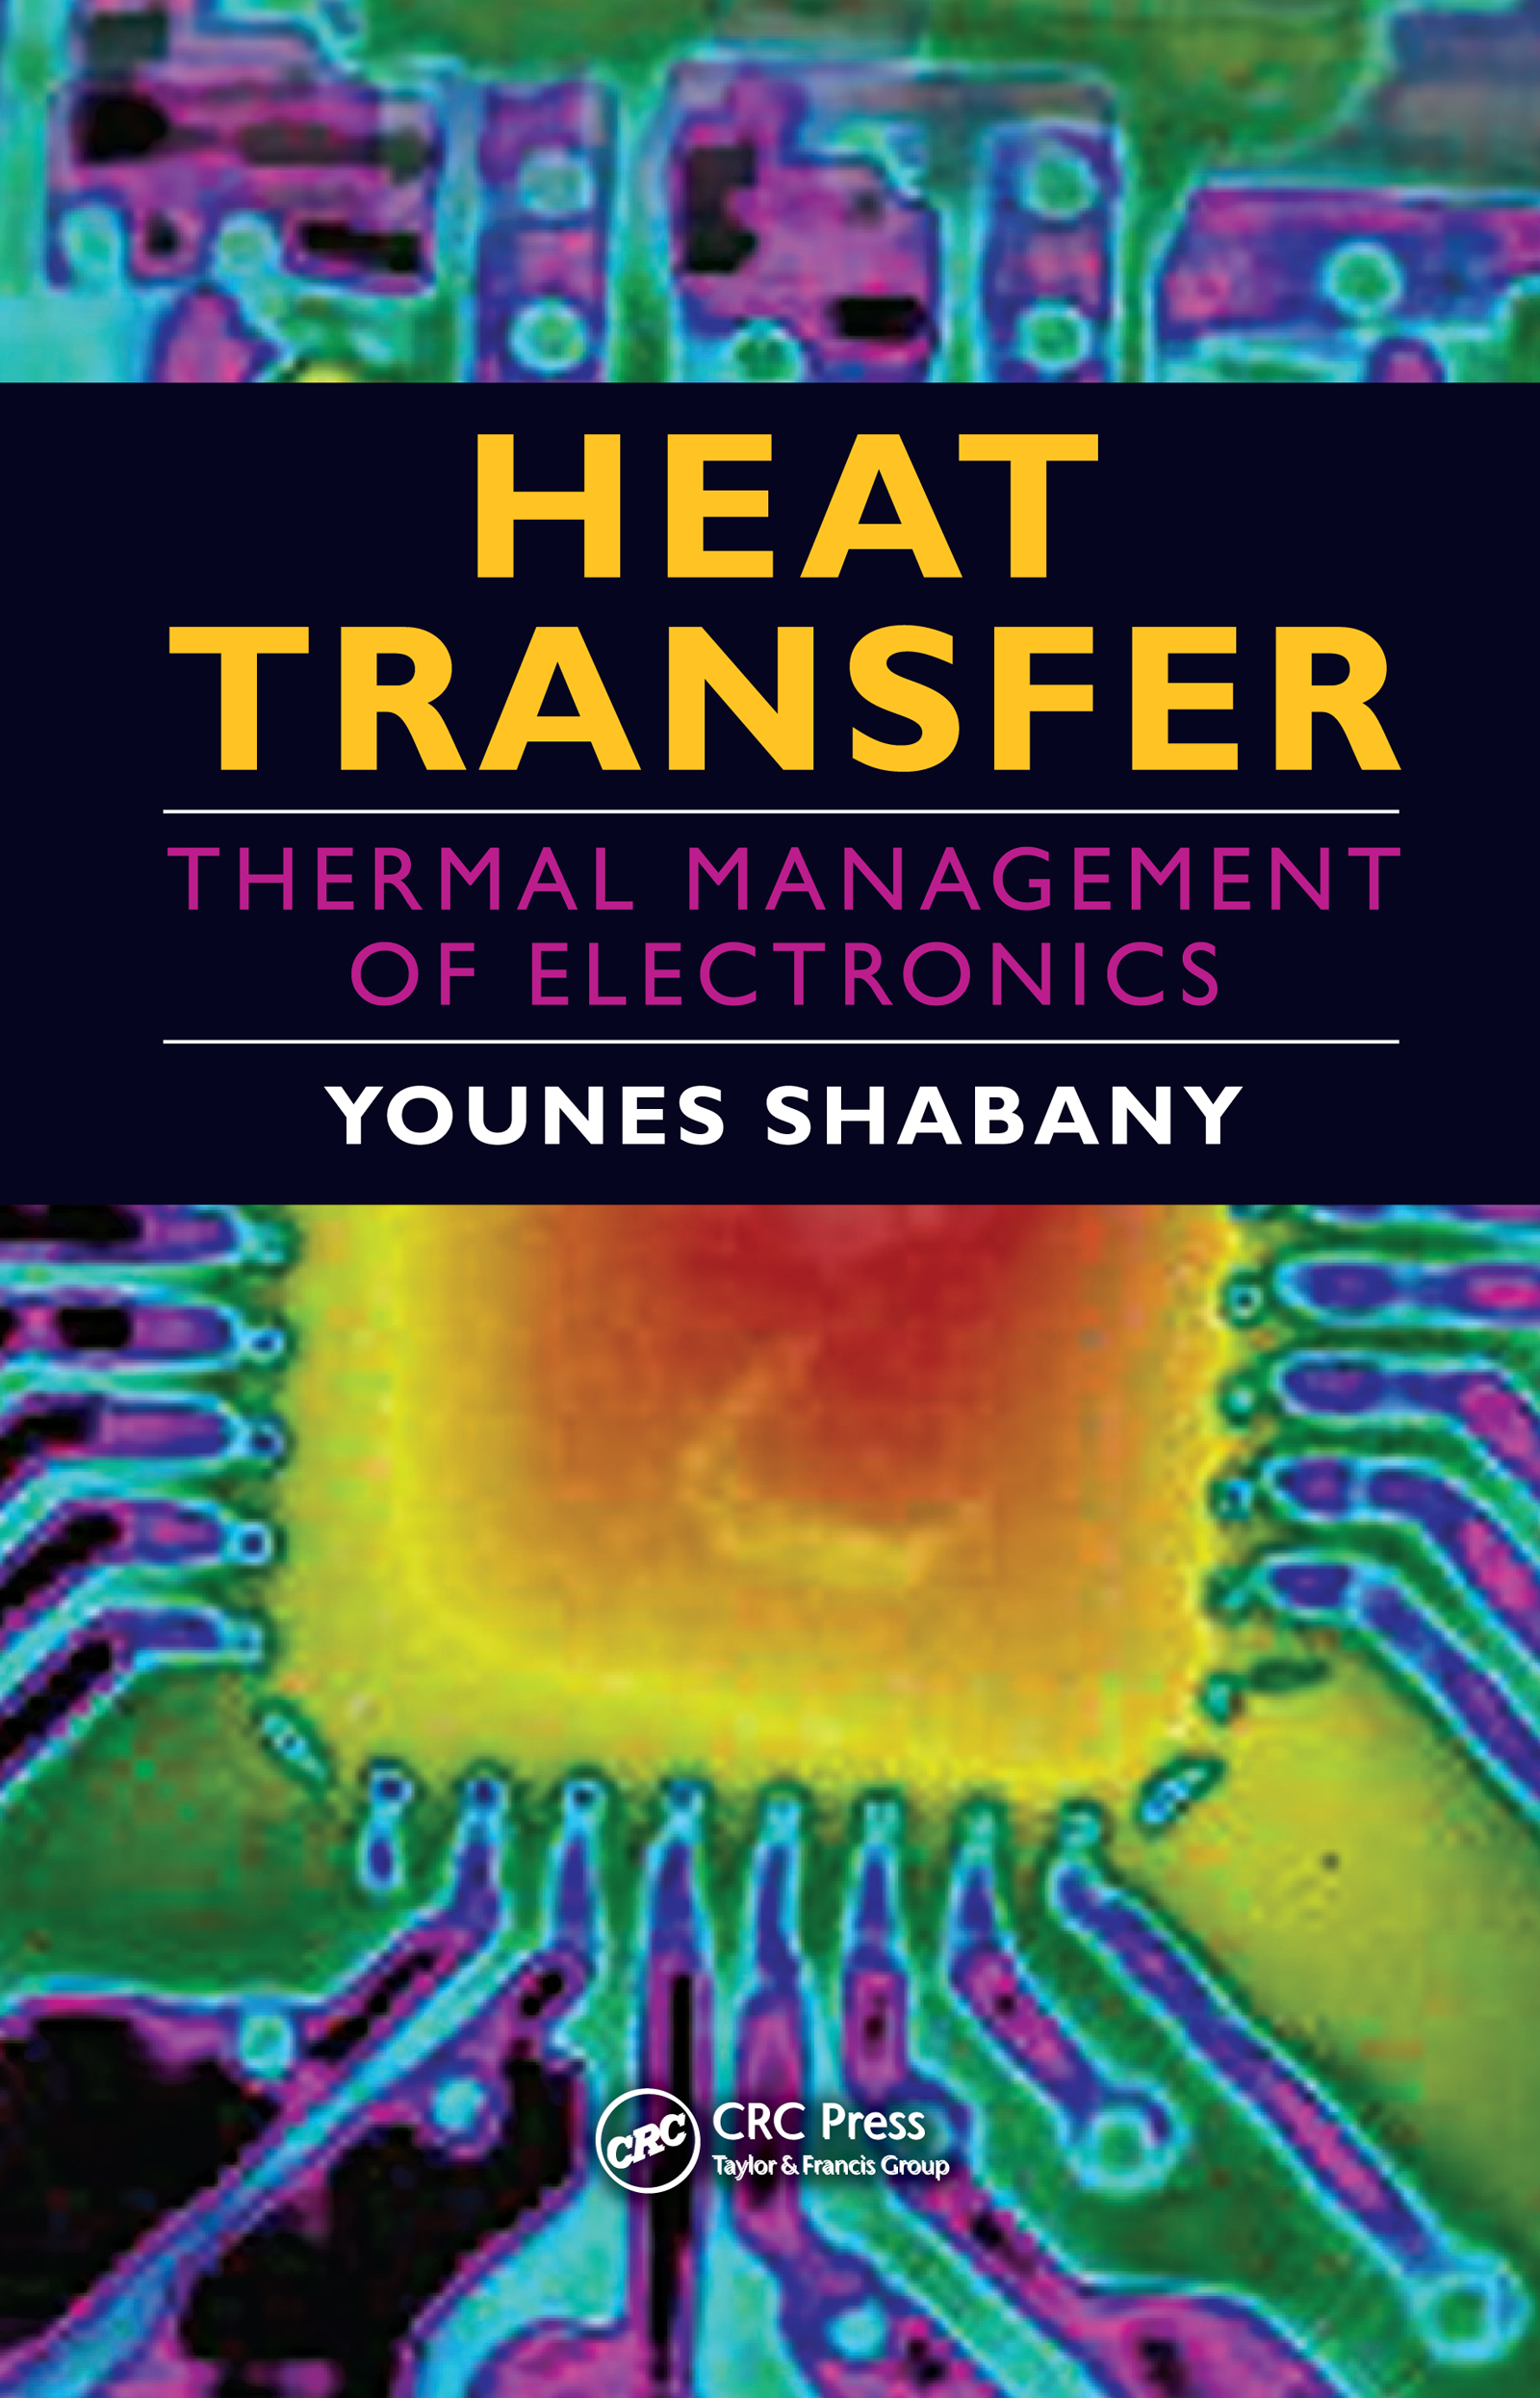 Download Ebook Heat Transfer by Younes Shabany Pdf